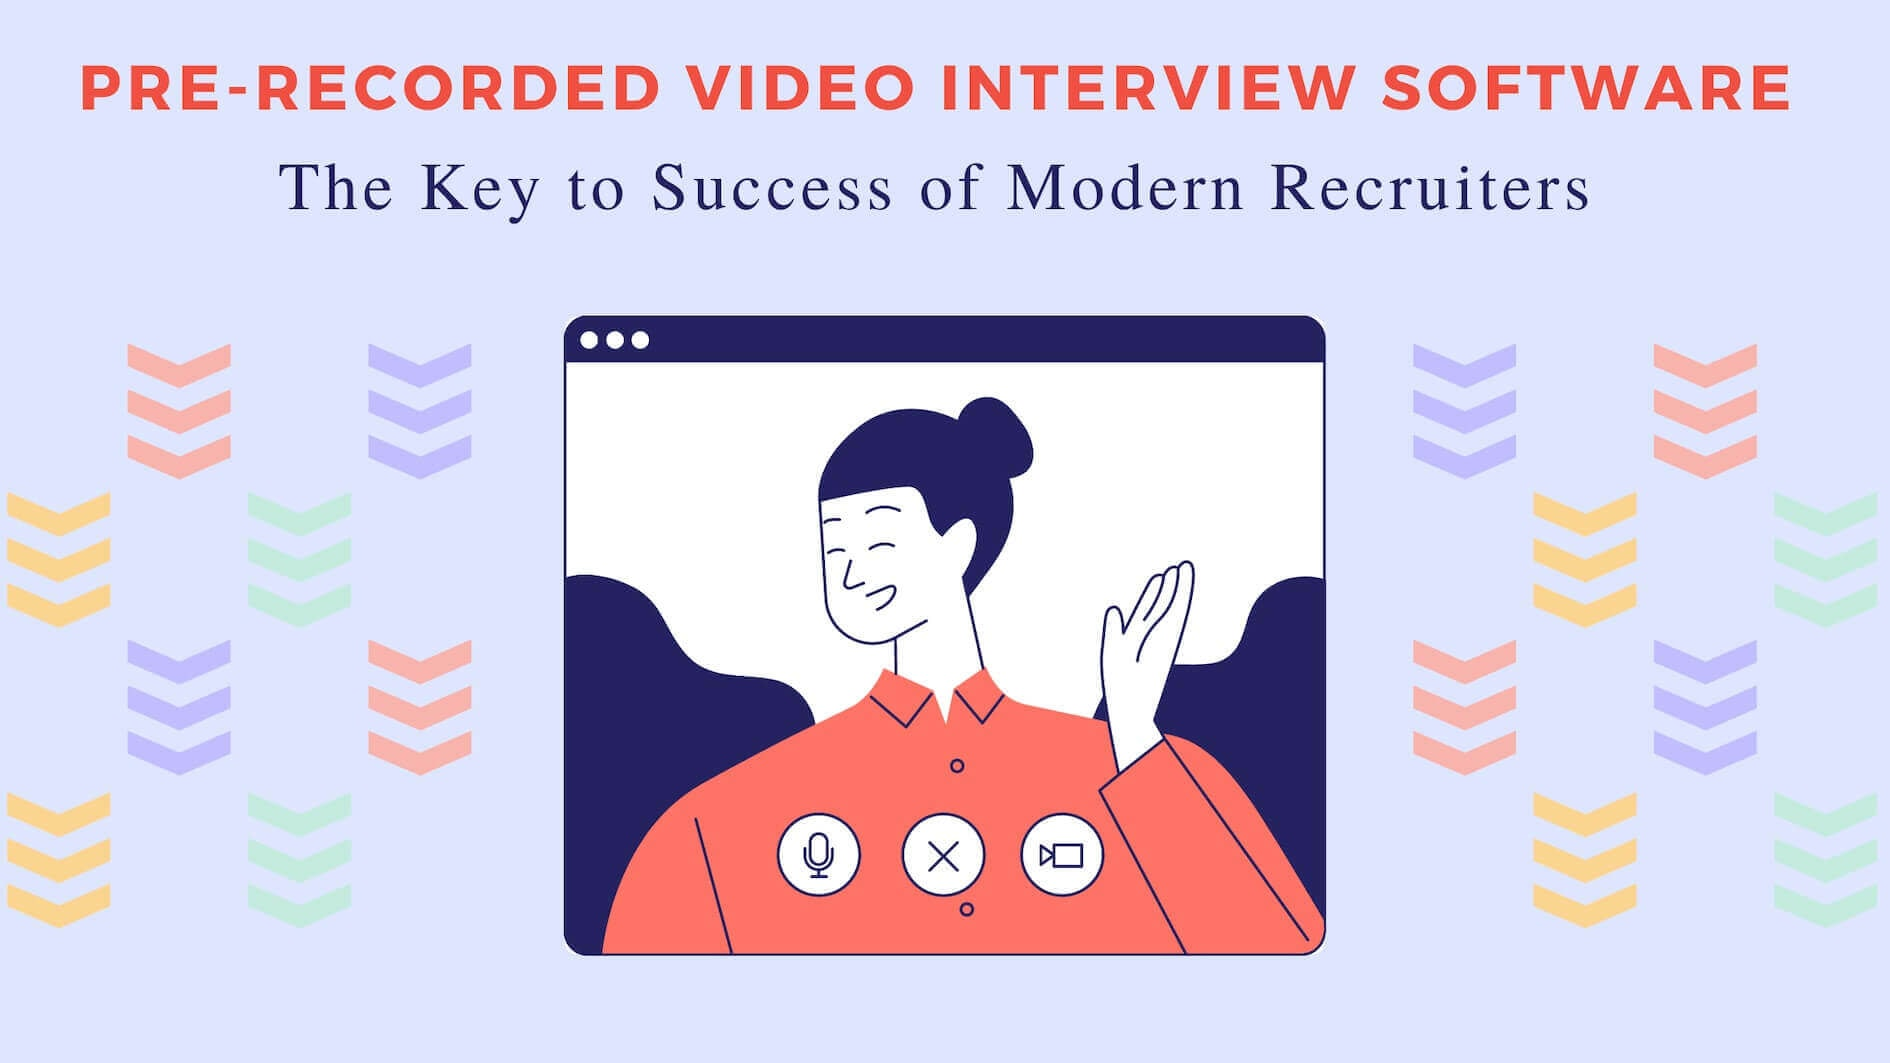 Pre-Recorded Video Interview Software: The Key to Success of Modern Recruiters